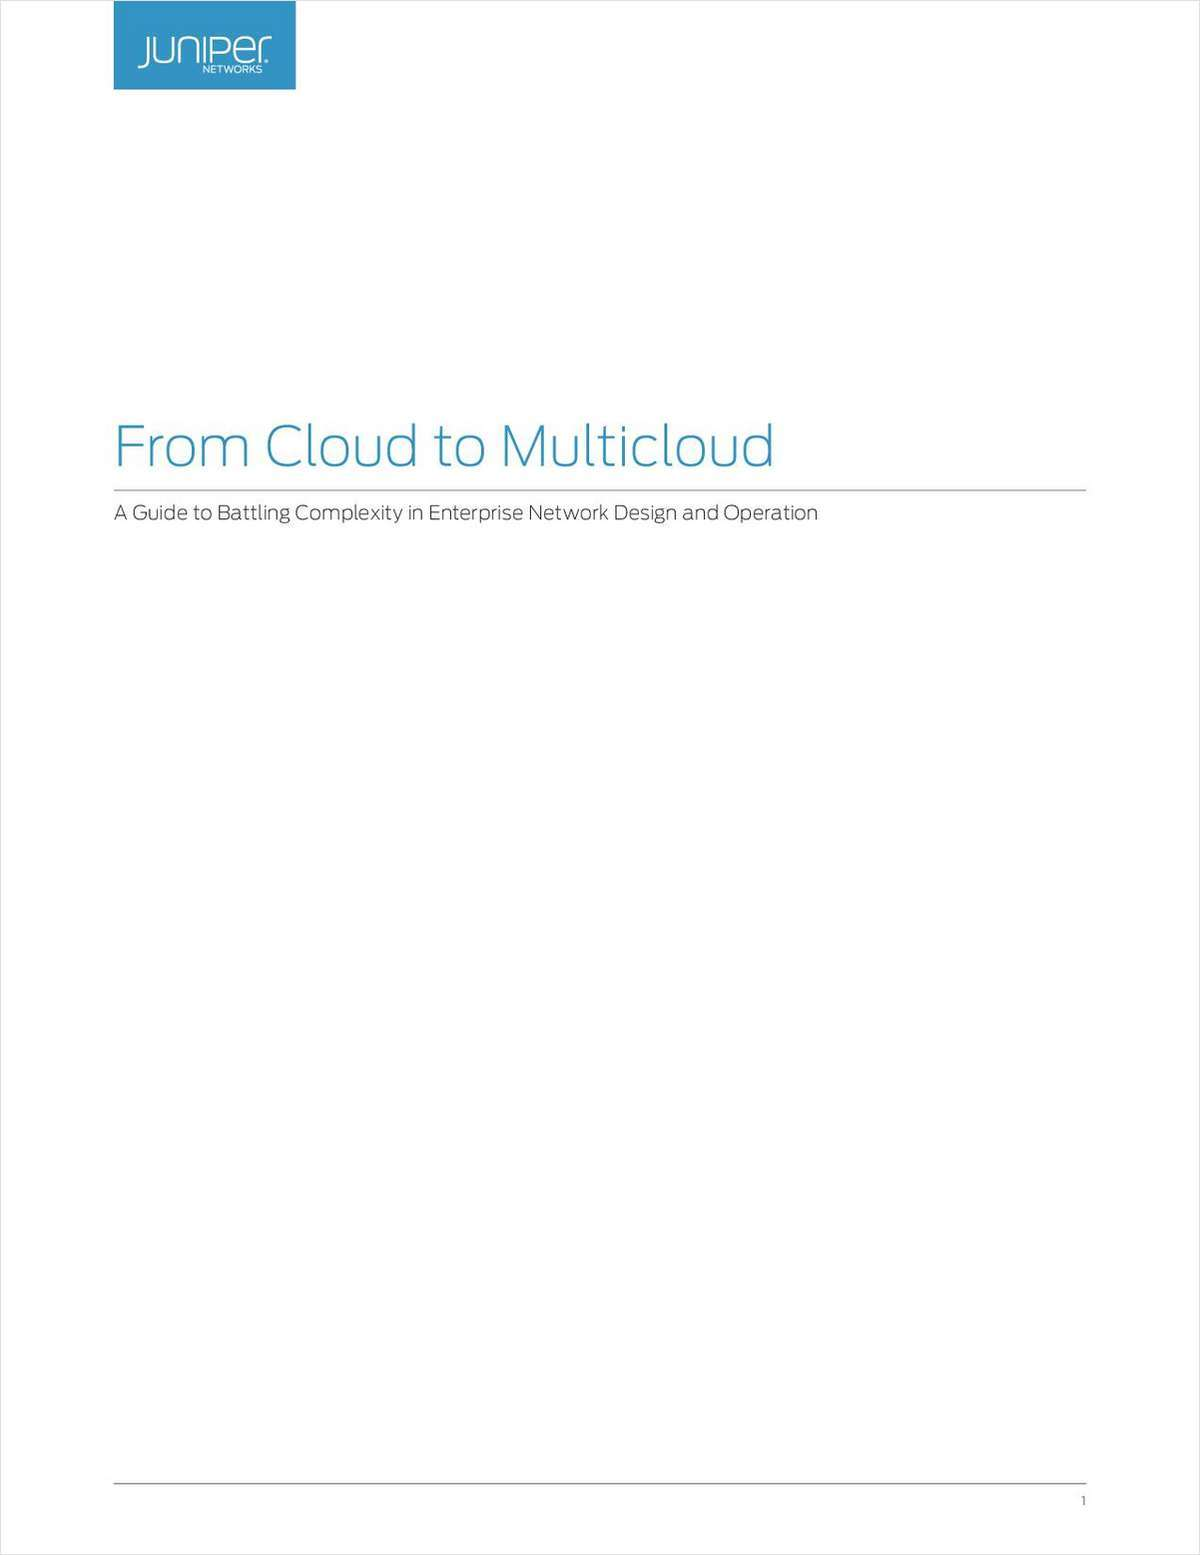 From Cloud to Multicloud: A Guide to Battling Complexity in